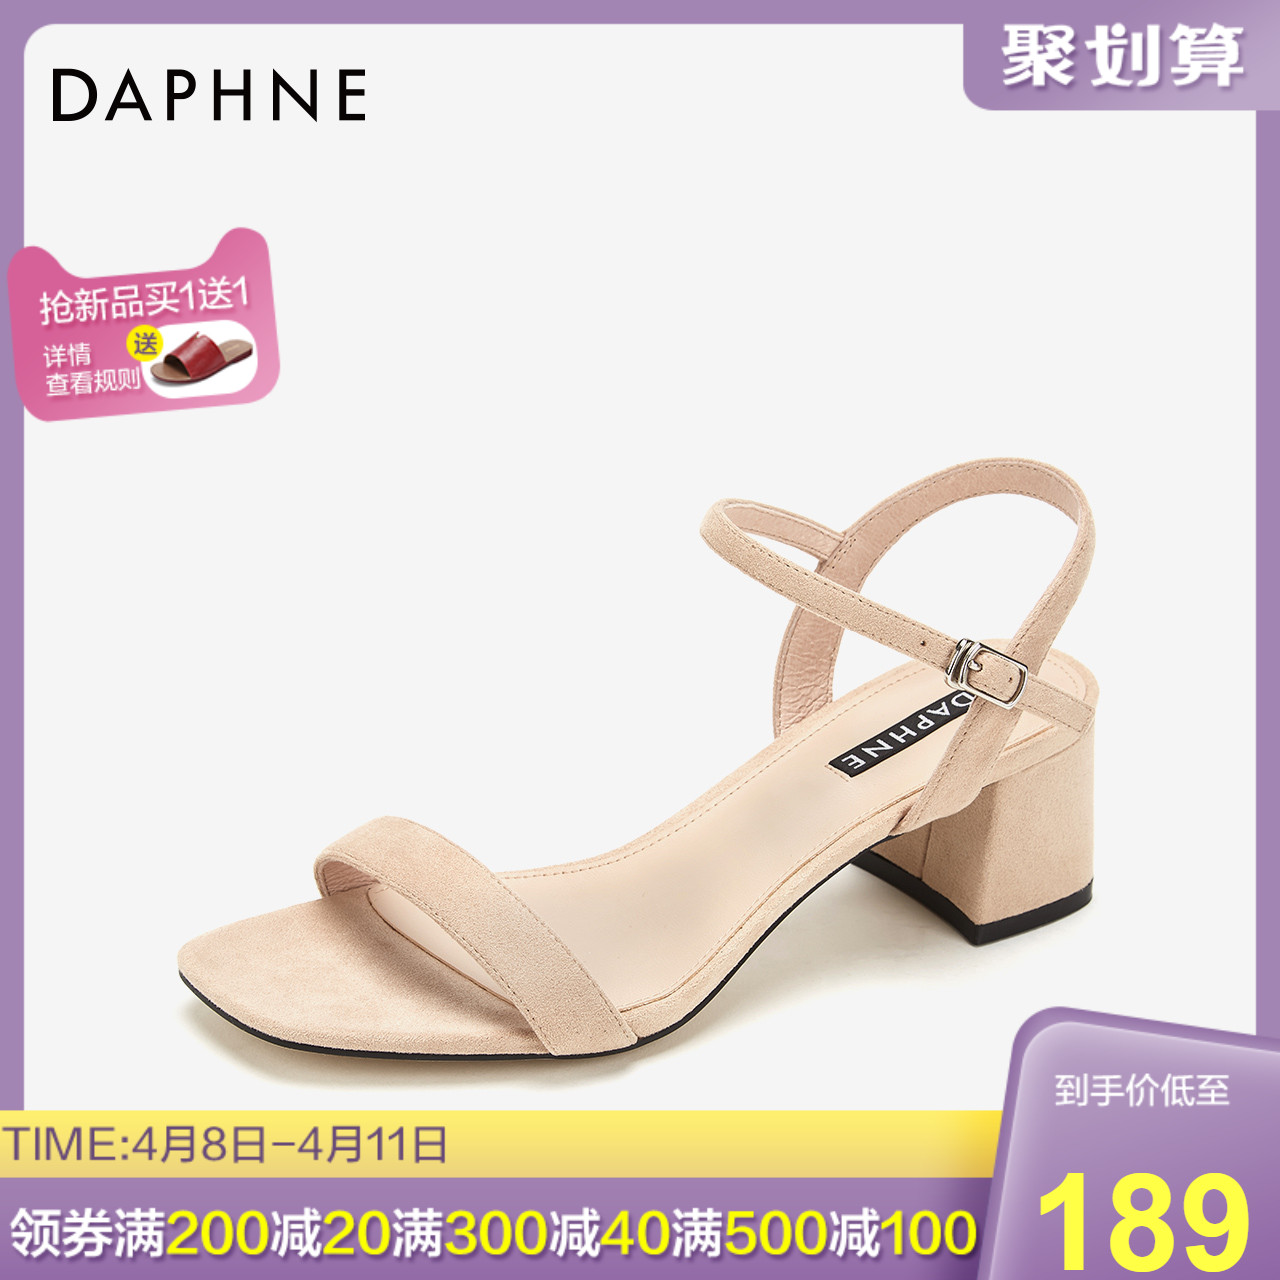 Daphne 2020 summer new women's shoes elegant one word with suede thick heel high square head color block open toe sandals